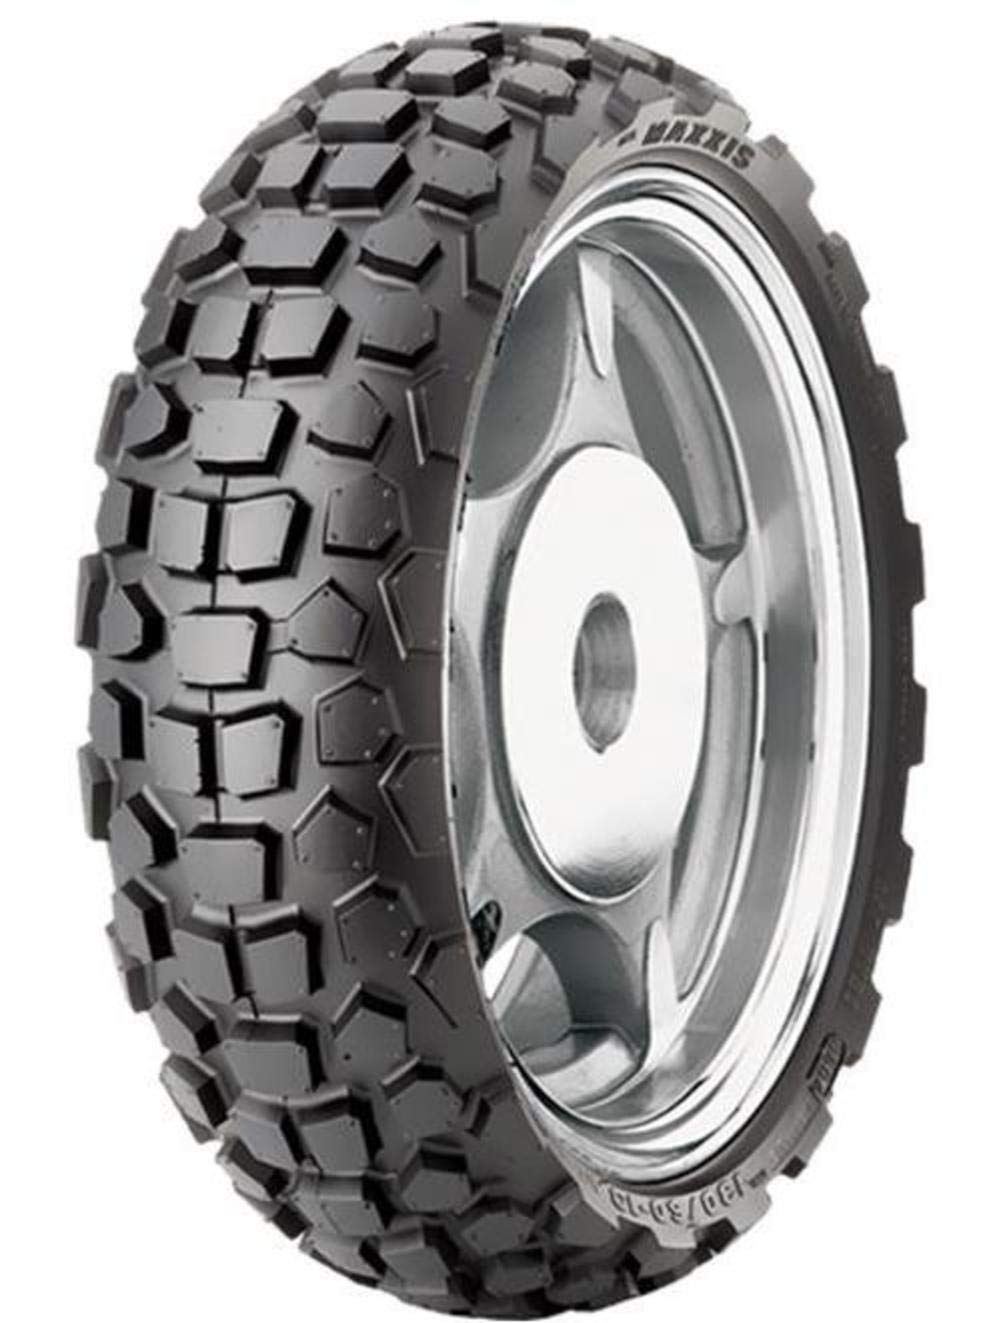 Maxxis TM13025100 M6024 Front/Rear Scooter Tire - 120/90-10, Position: Front/Rear, Tire Size: 120/90-10, Rim Size: 10, Load Rating: 57, Speed Rating: J, Tire Type: Scooter/Moped, Tire Construction: No 4333417835